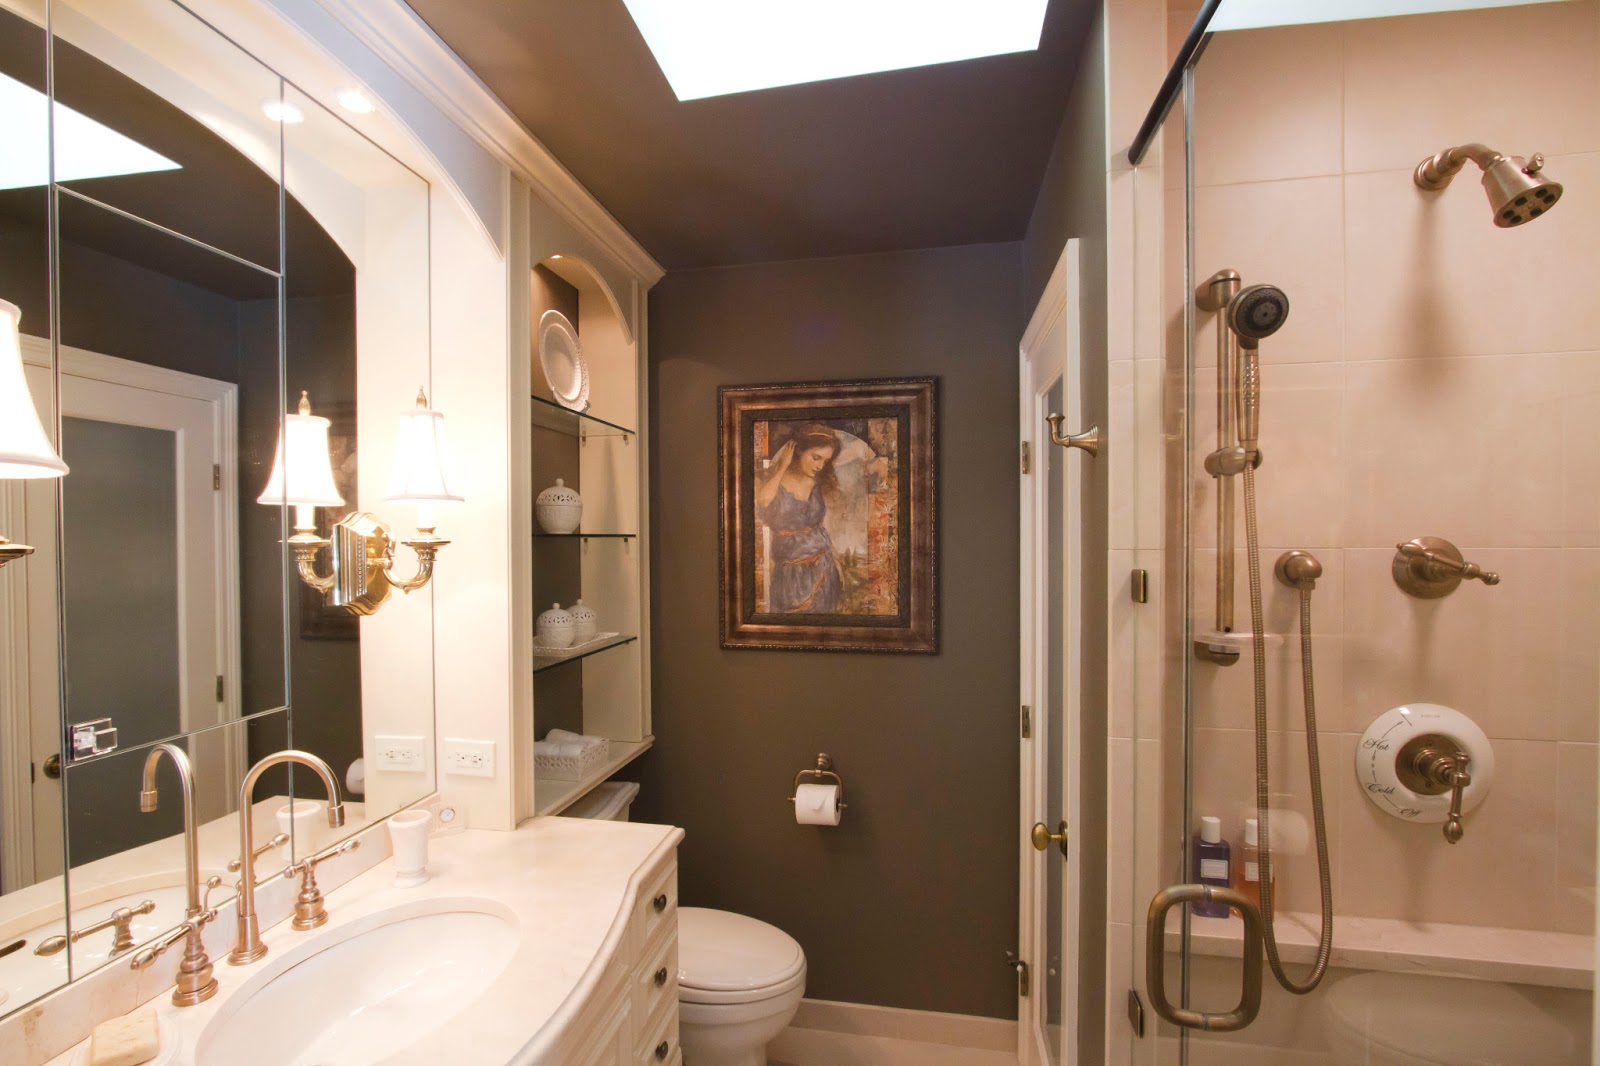 28 Idea For Bathroom Bathroom Design Ideas For Small Spaces